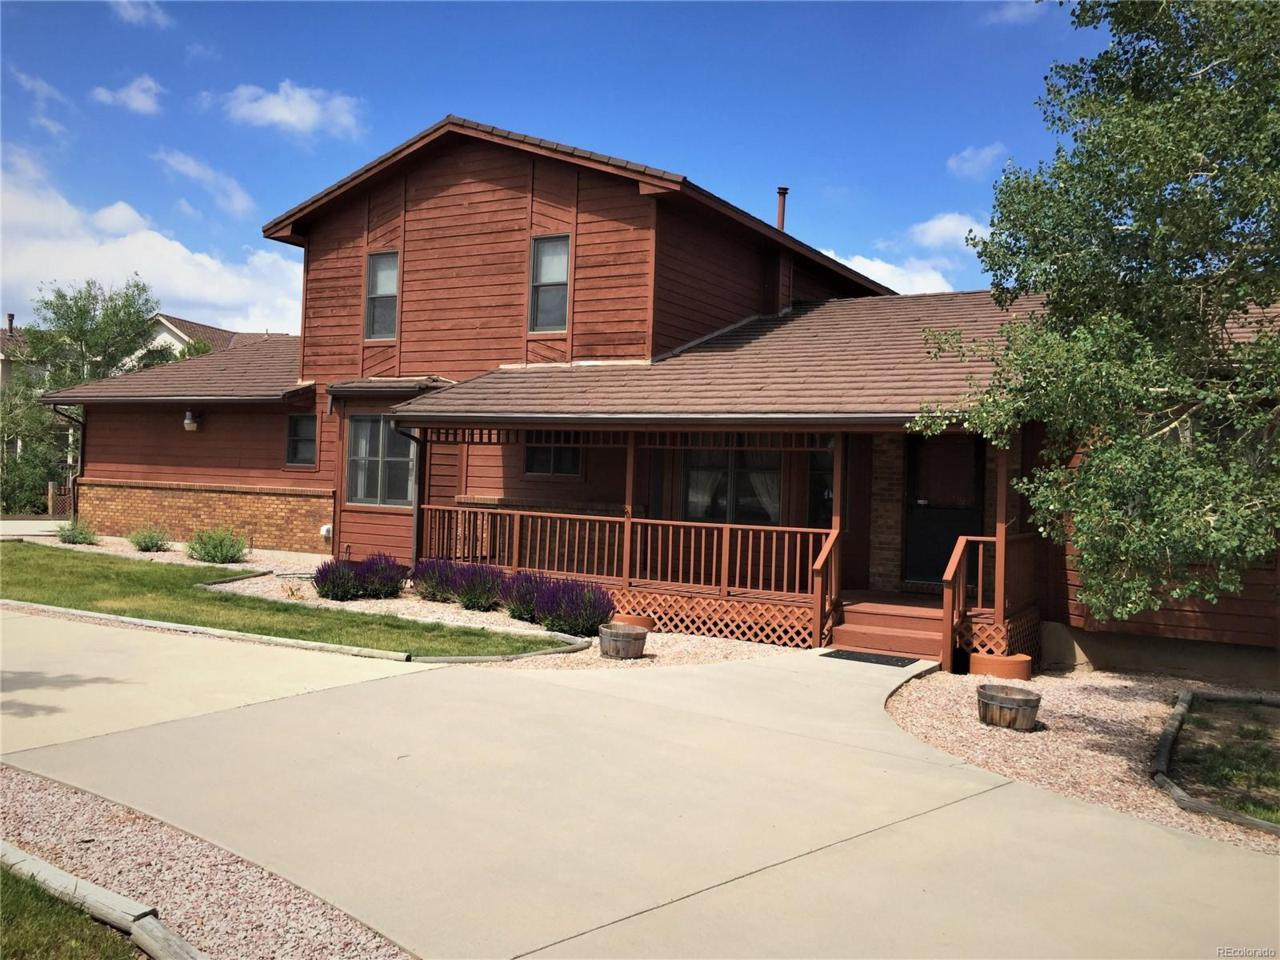 17840 New London Road, Monument, CO 80132 (MLS #1854554) :: 8z Real Estate